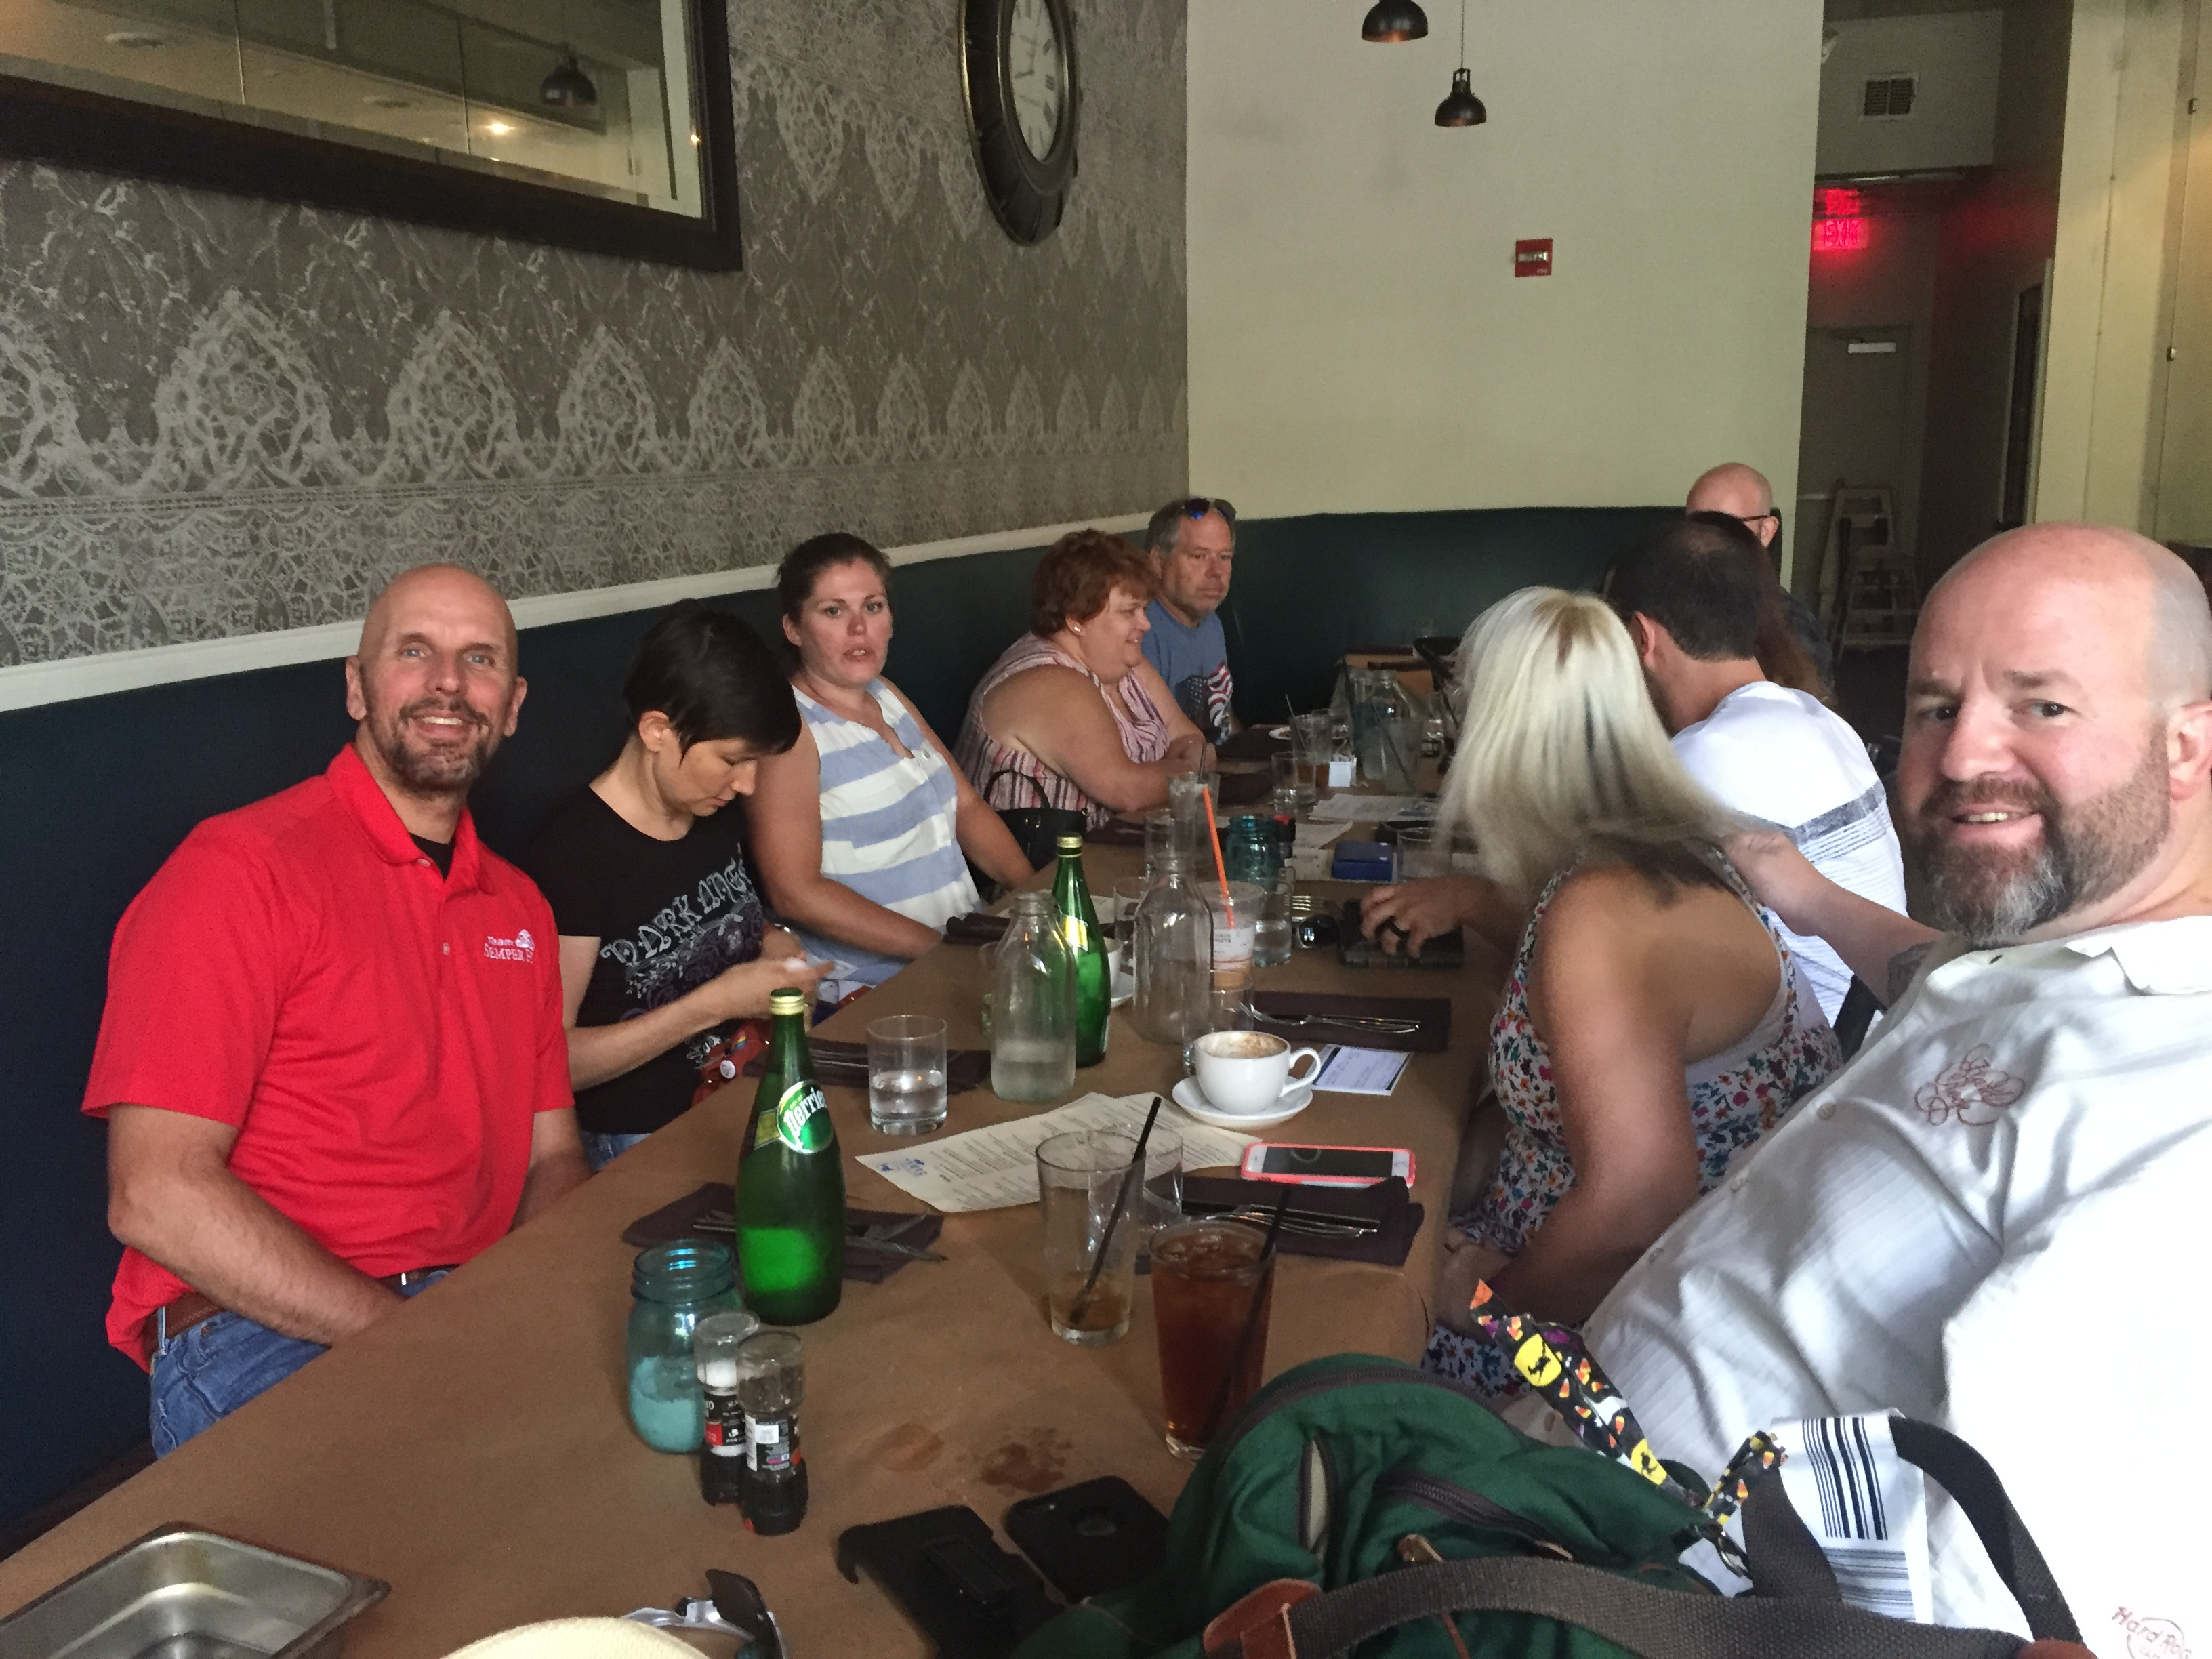 Orlando lunch meeting